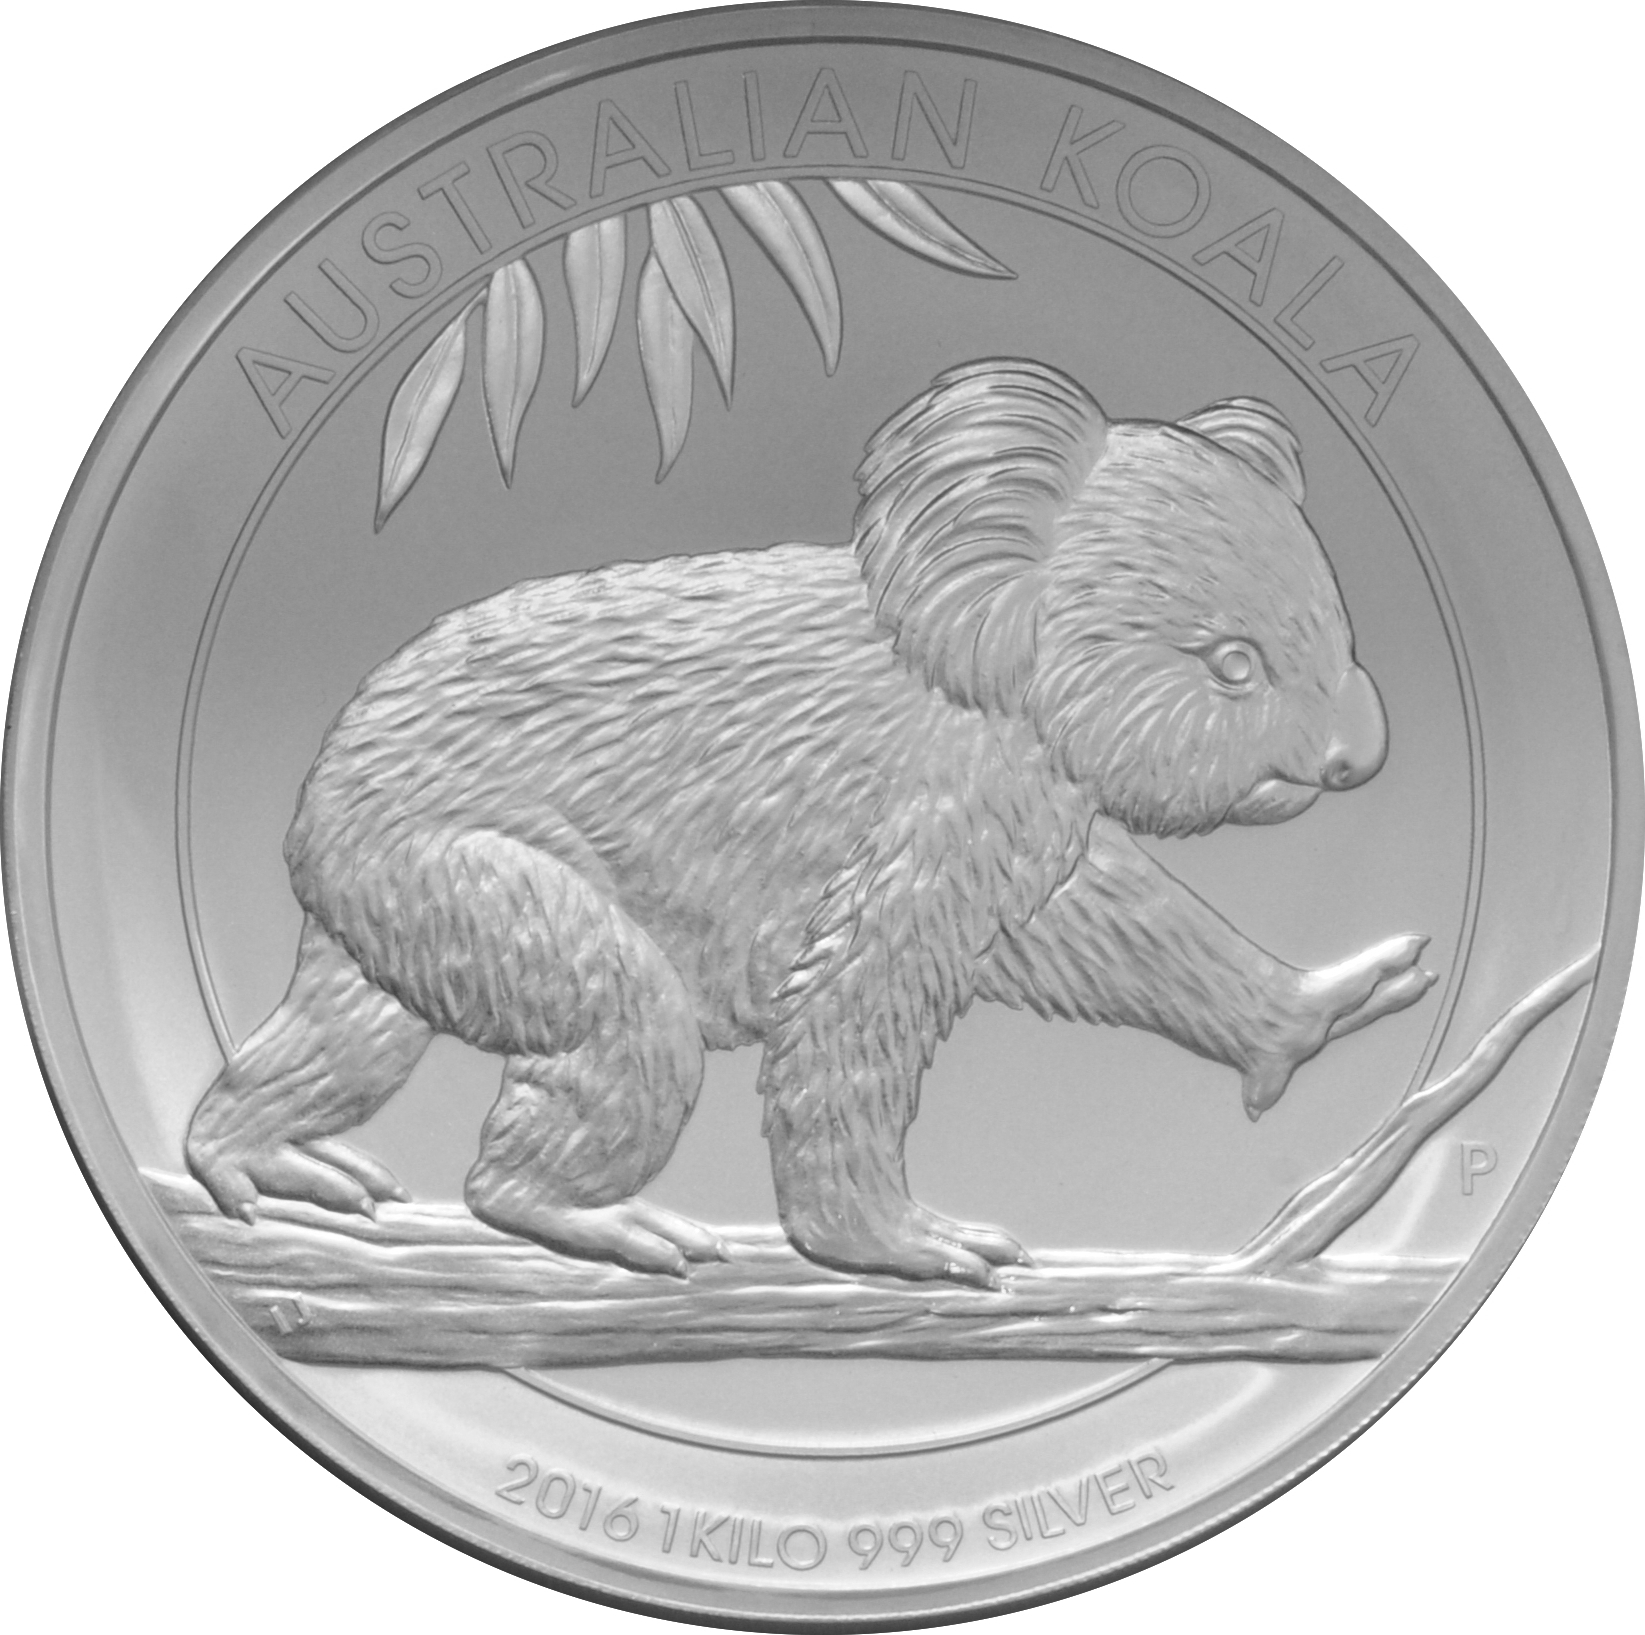 Buy 2016 1 Kilo Koala Silver Coin From Bullionbypost